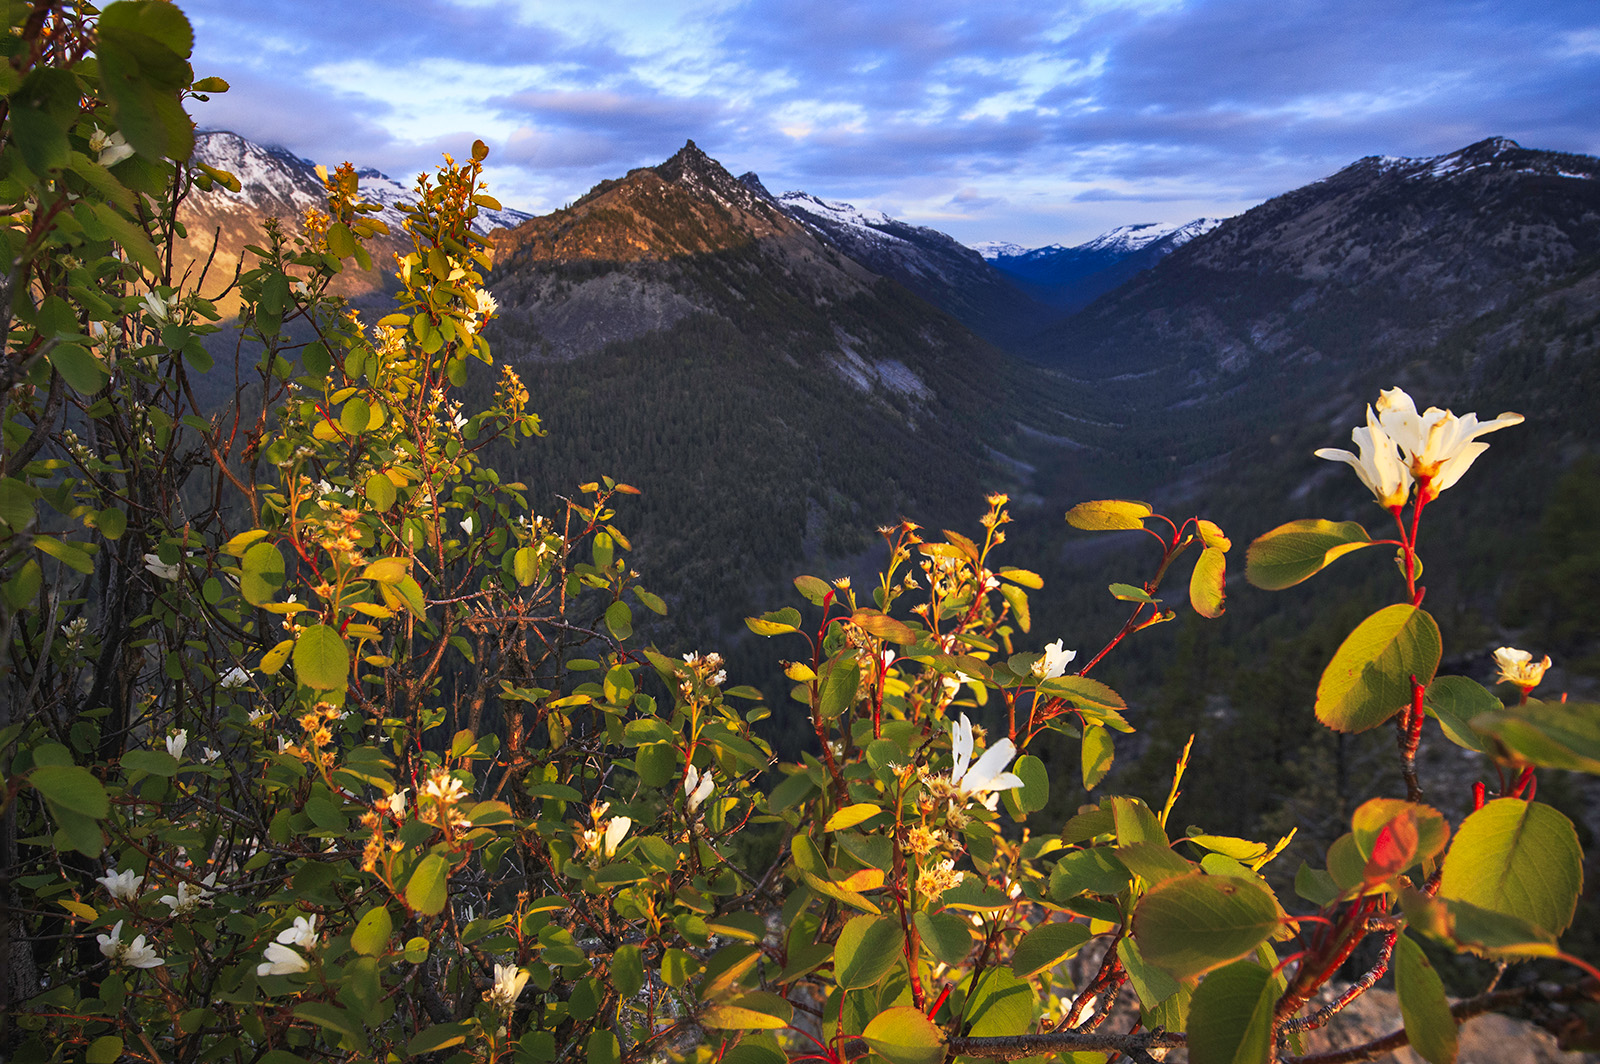 flowers at sunrise at Bitter Root Mountains